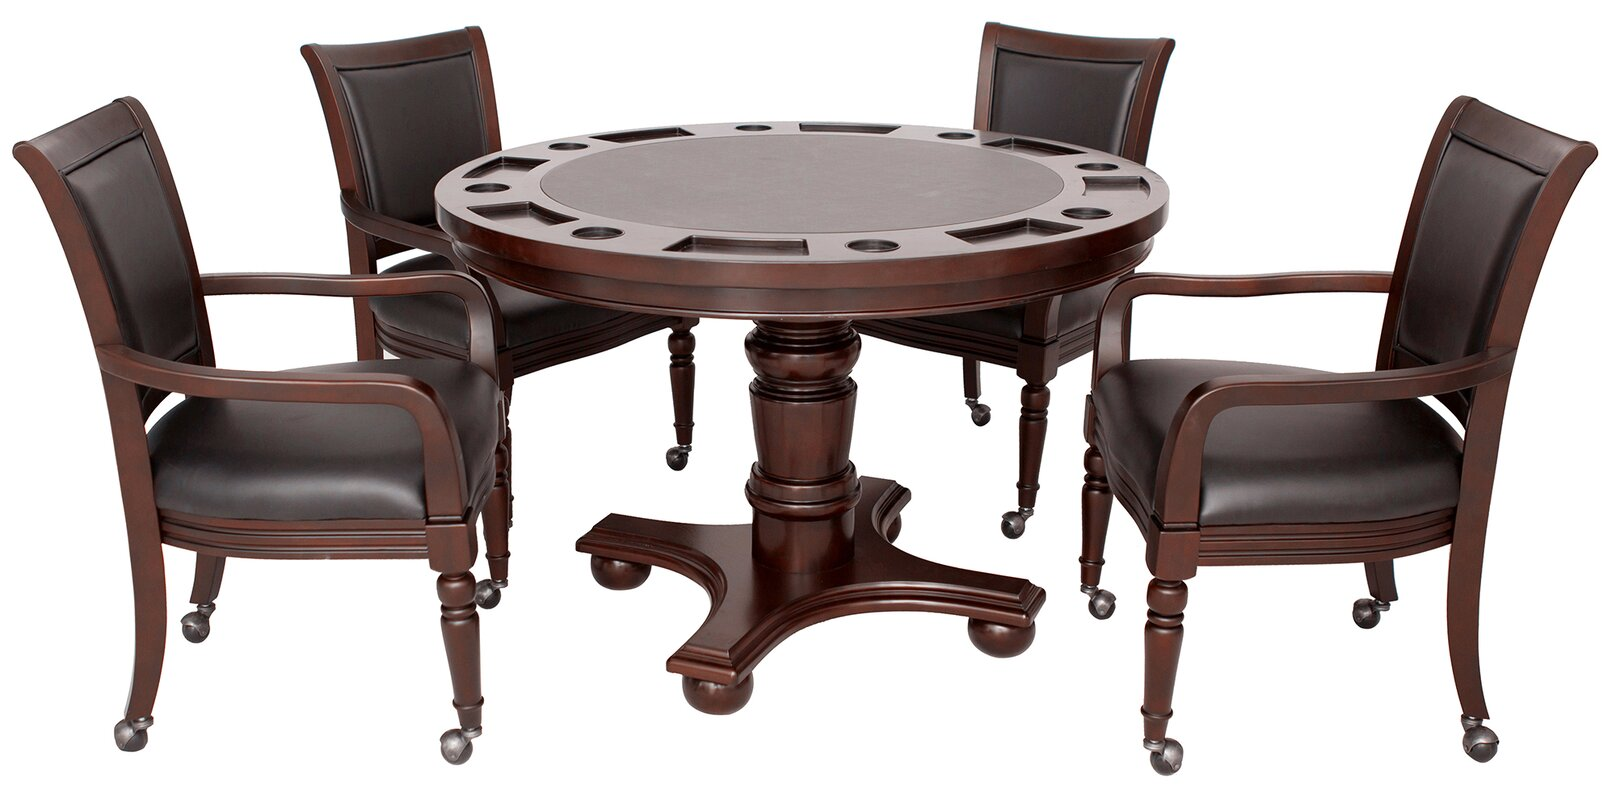 Hathaway games bridgeport 2 in 1 poker game table set reviews bridgeport 2 in 1 poker game table set geotapseo Choice Image